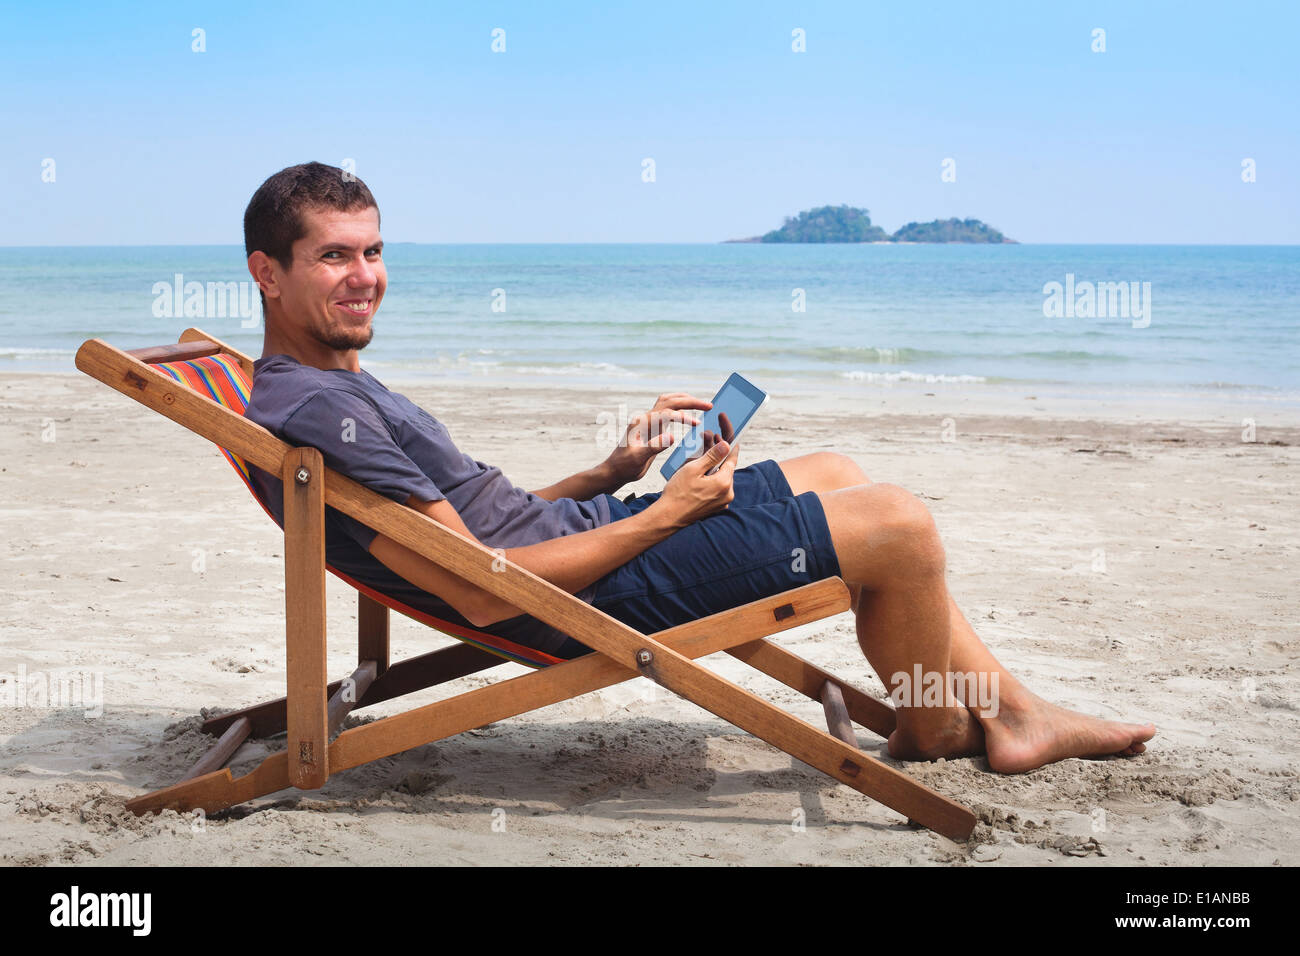 banking online, portrait of happy business man with tablet on the beach - Stock Image